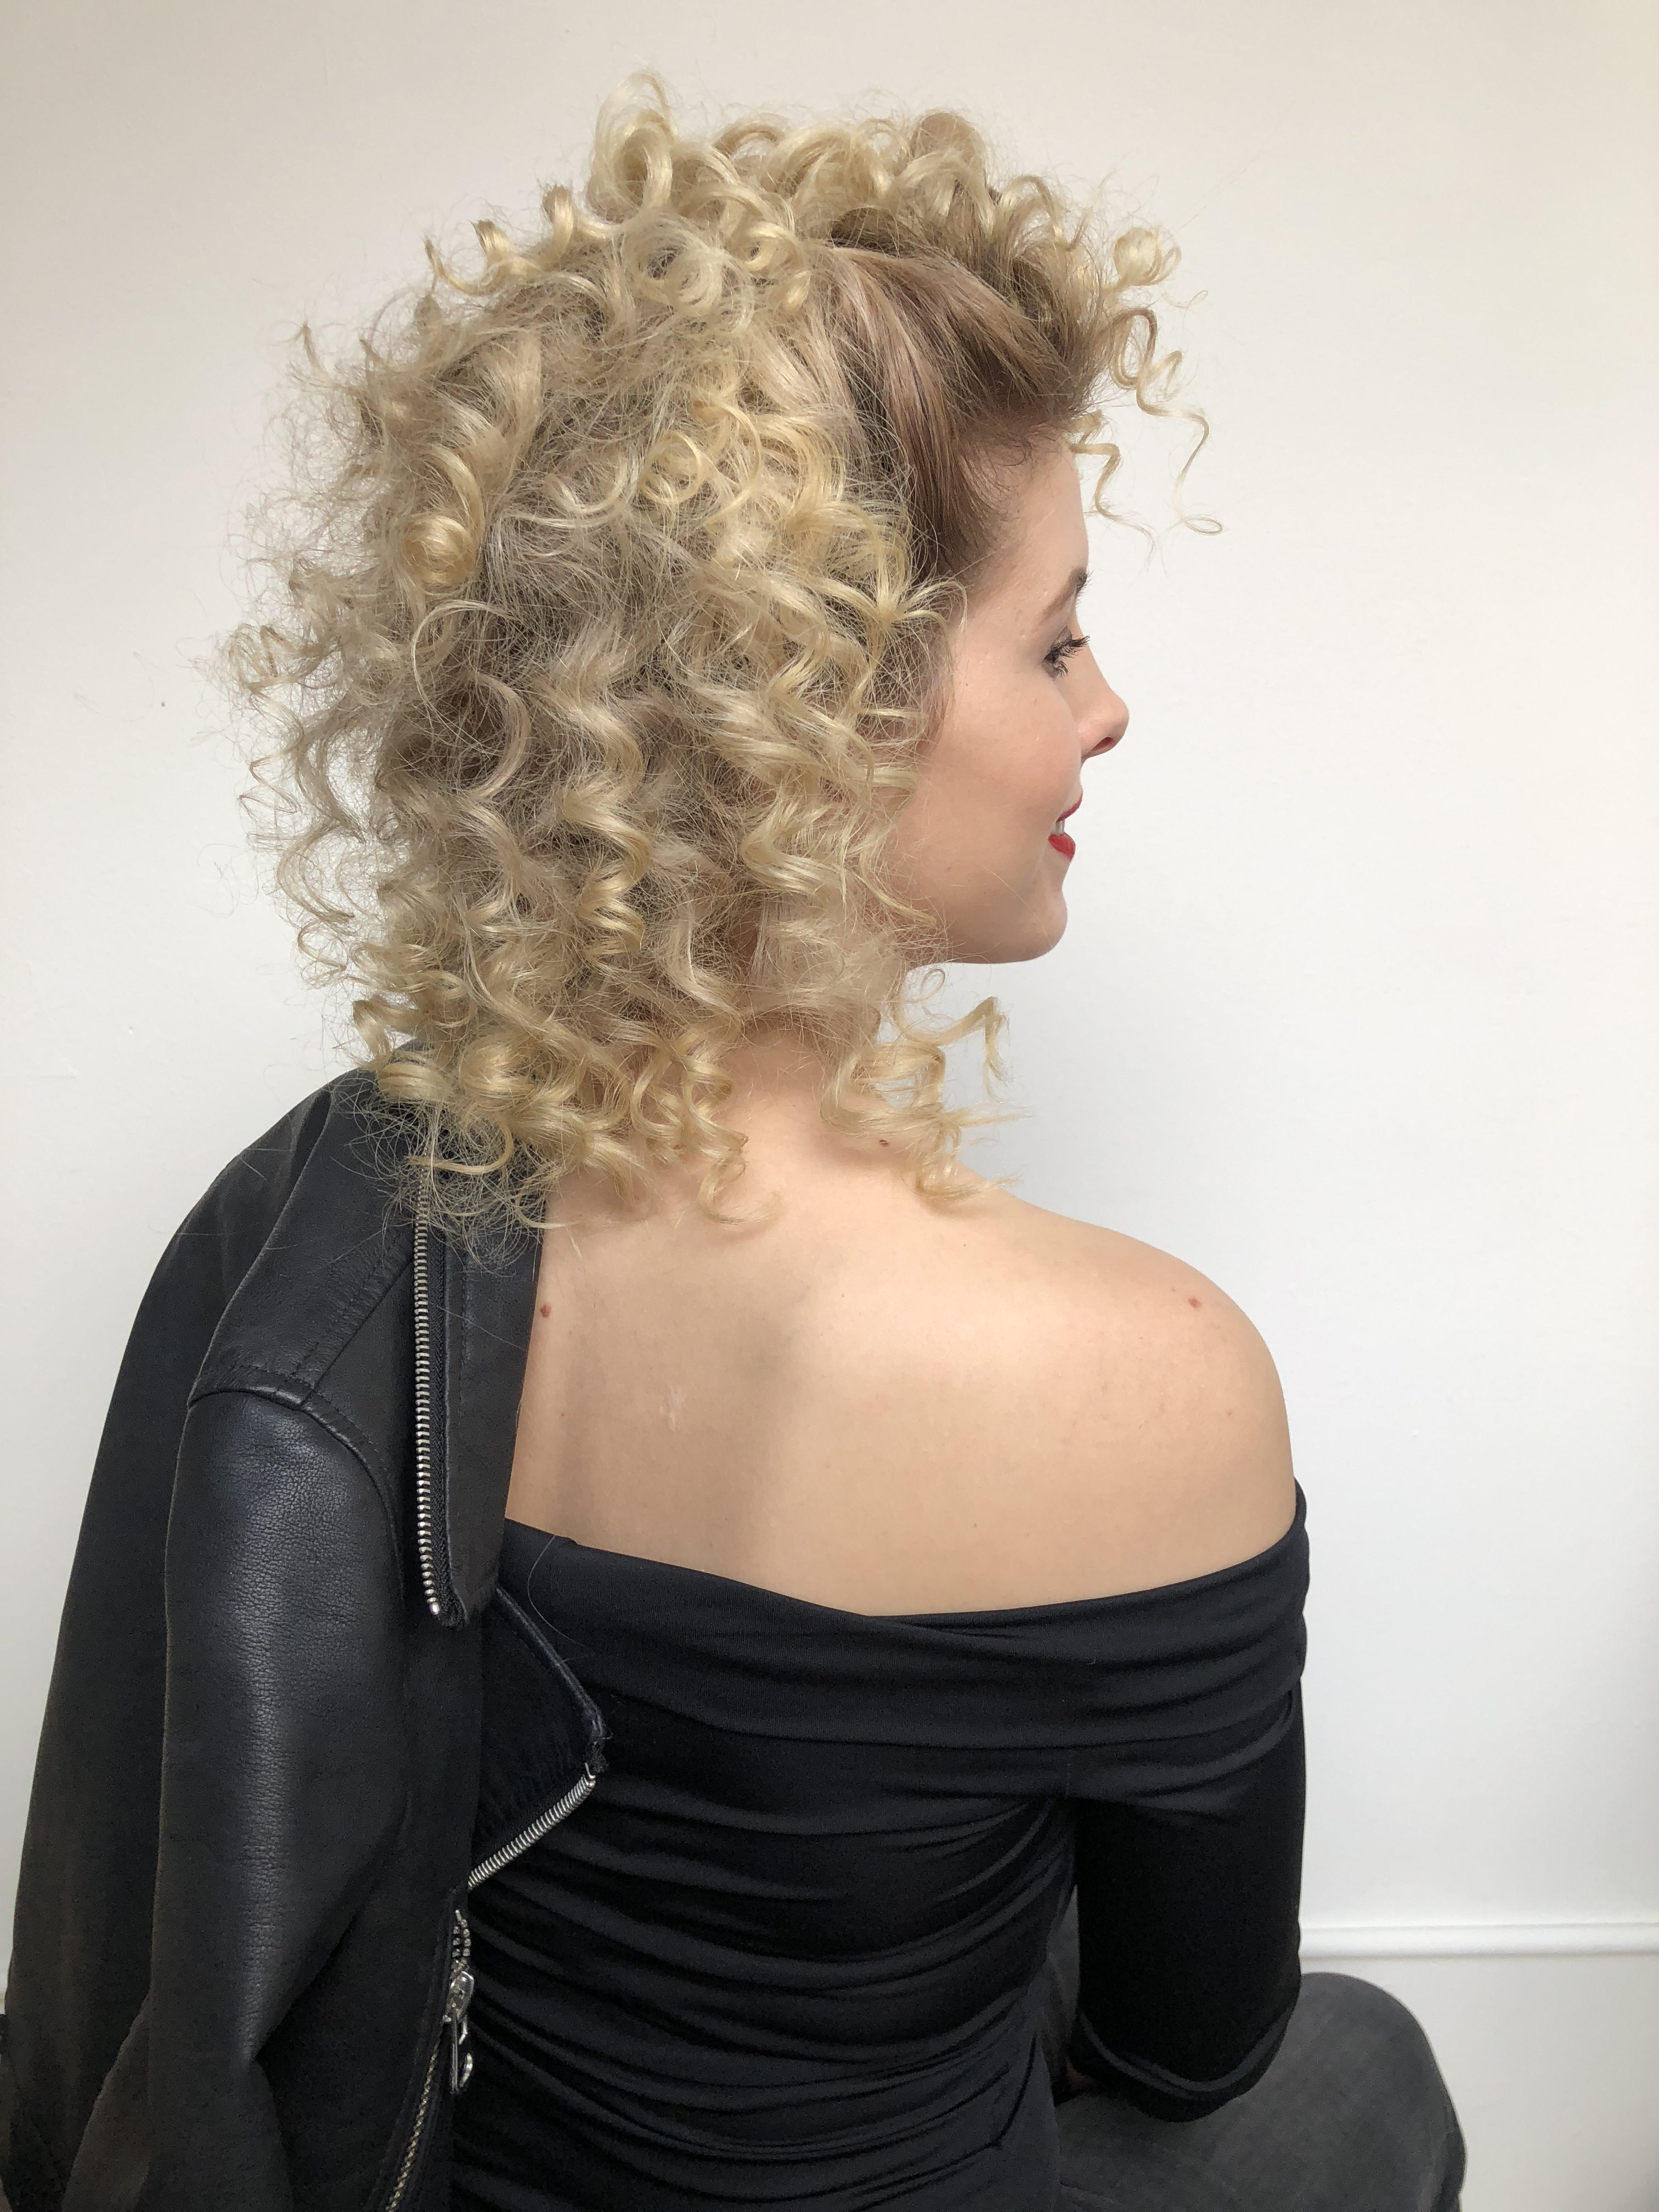 Sandy from grease hair tutorial on a blond woman wearing an off the shoulder black top and black leather jacket